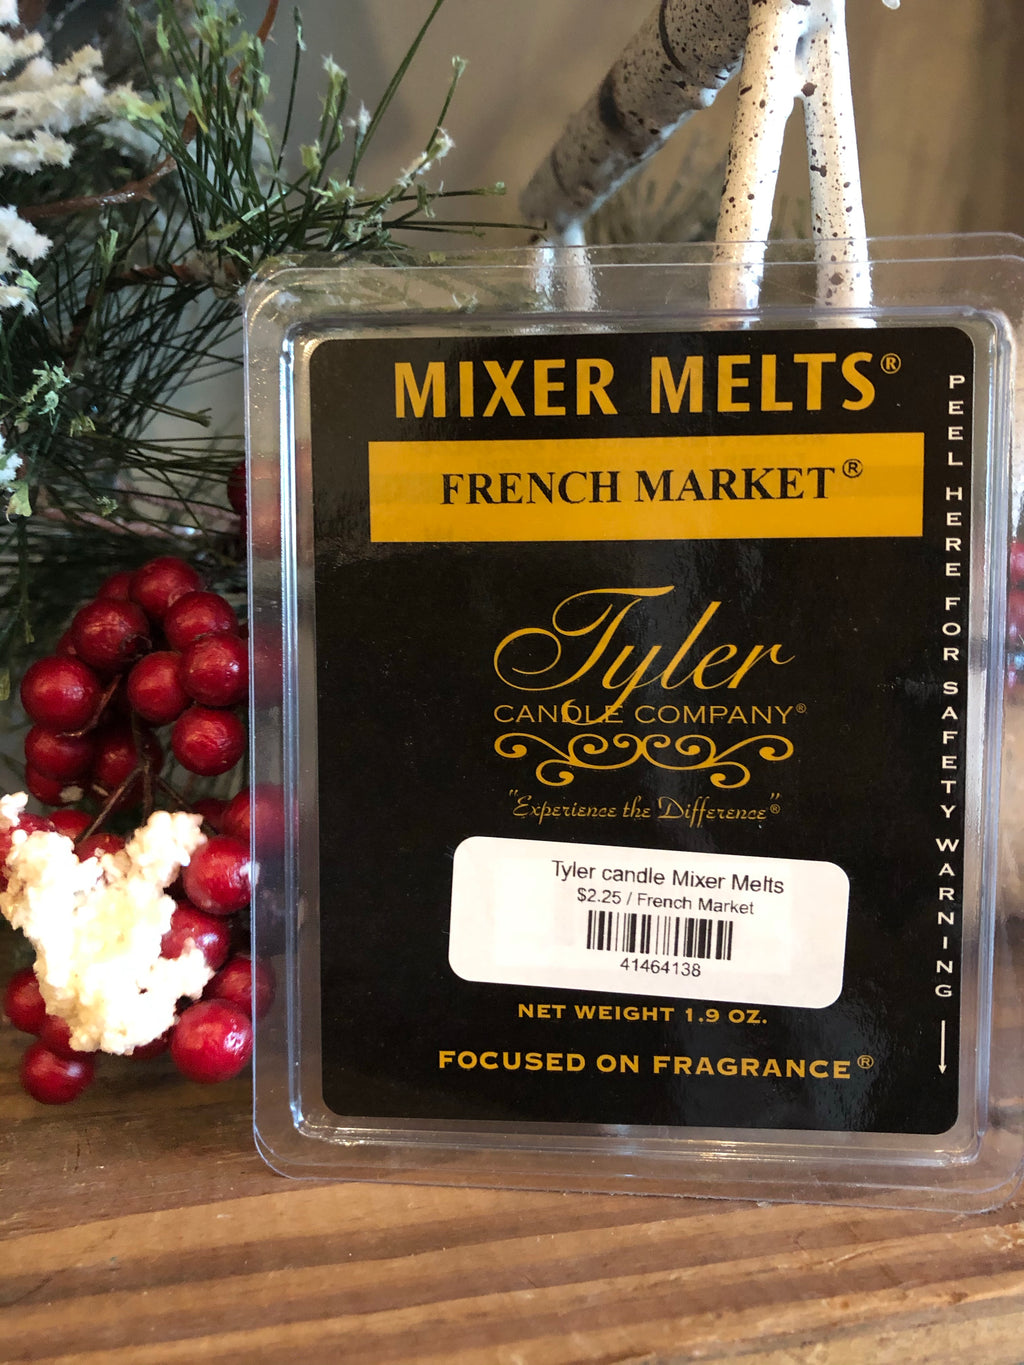 Tyler Candle Mixer Melts